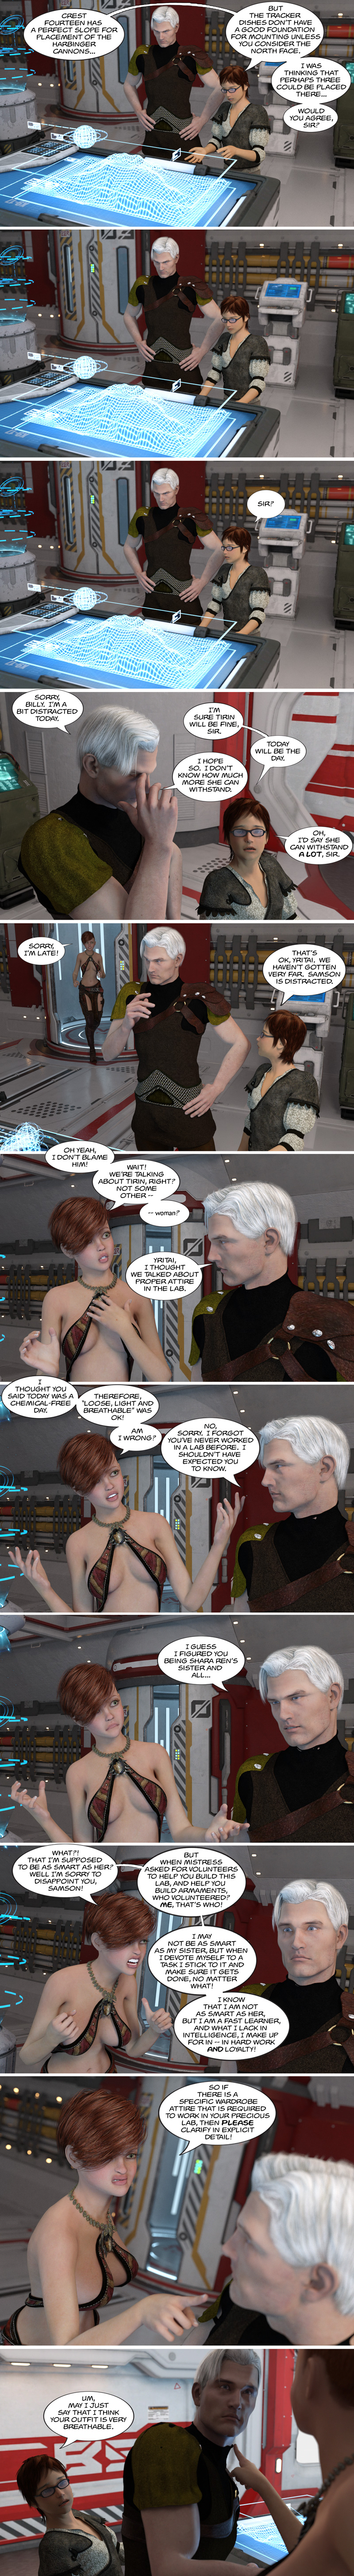 Chapter 15, page 2 – Samson advises Yritai on appropriate laboratory attire